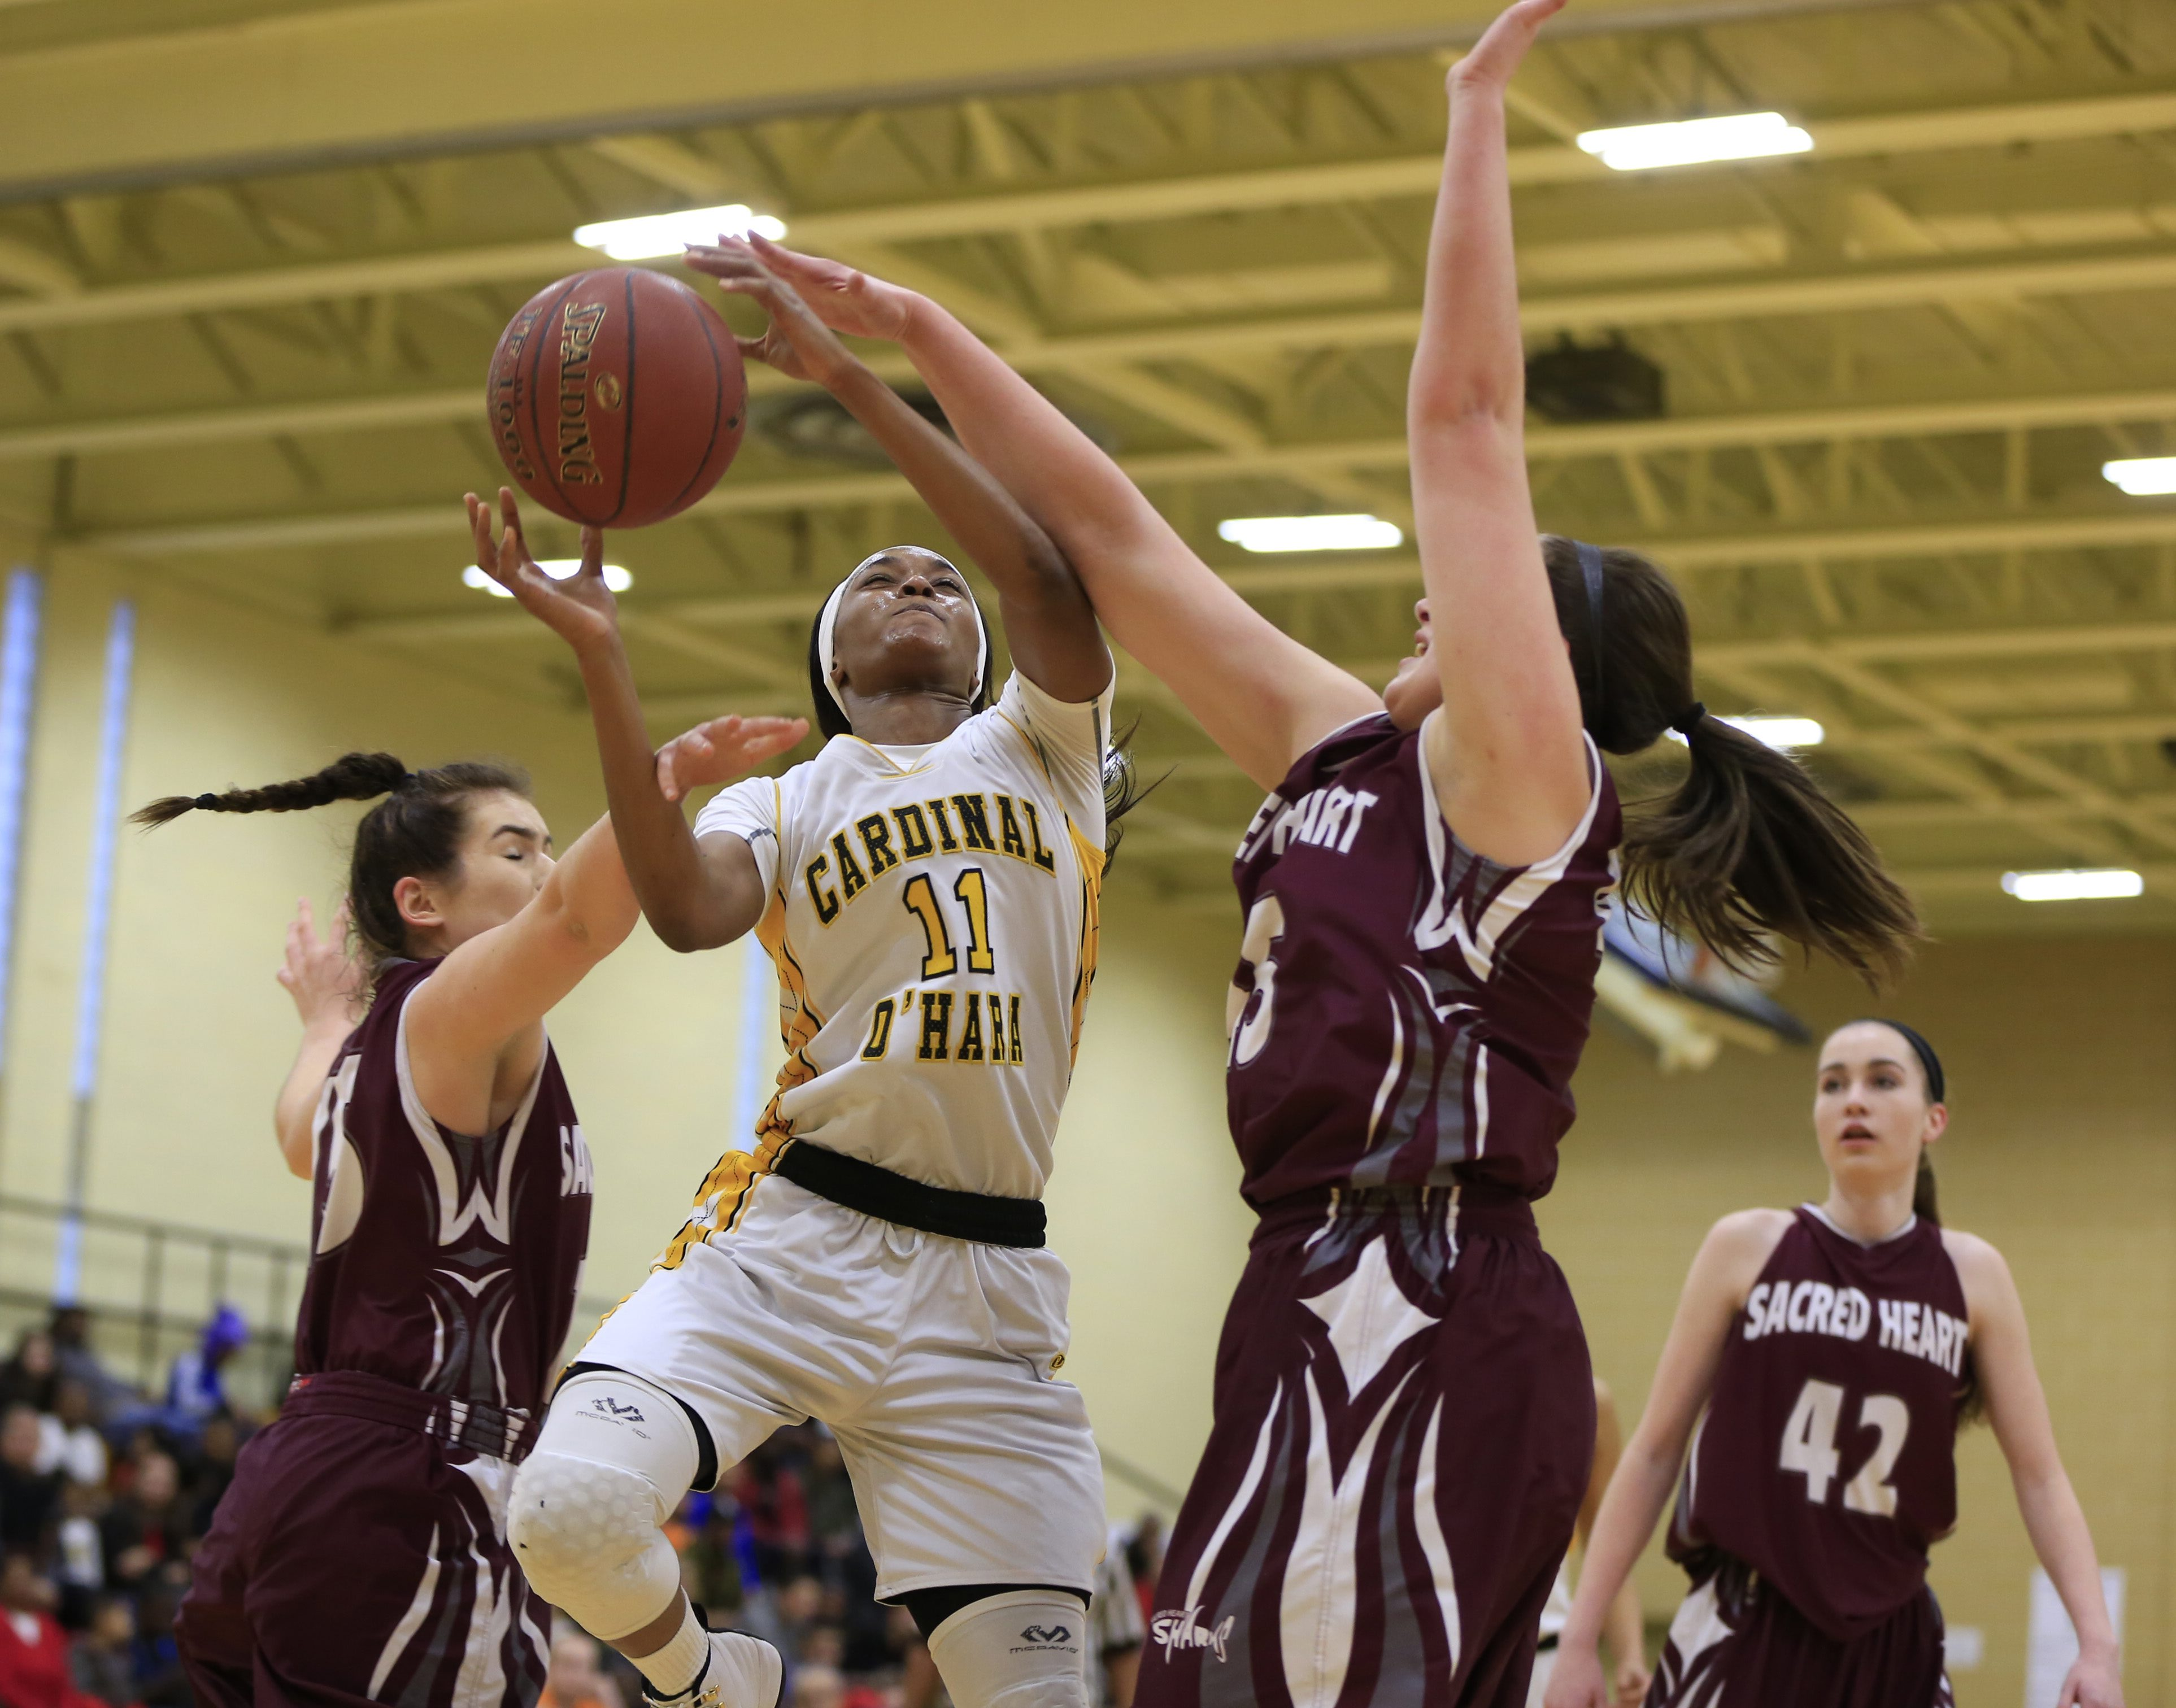 Cardinal O'Hara's Anndea Zeigler will sign her letter of intent to play at Canisius College on Thursday. (Harry Scull Jr./Buffalo News)